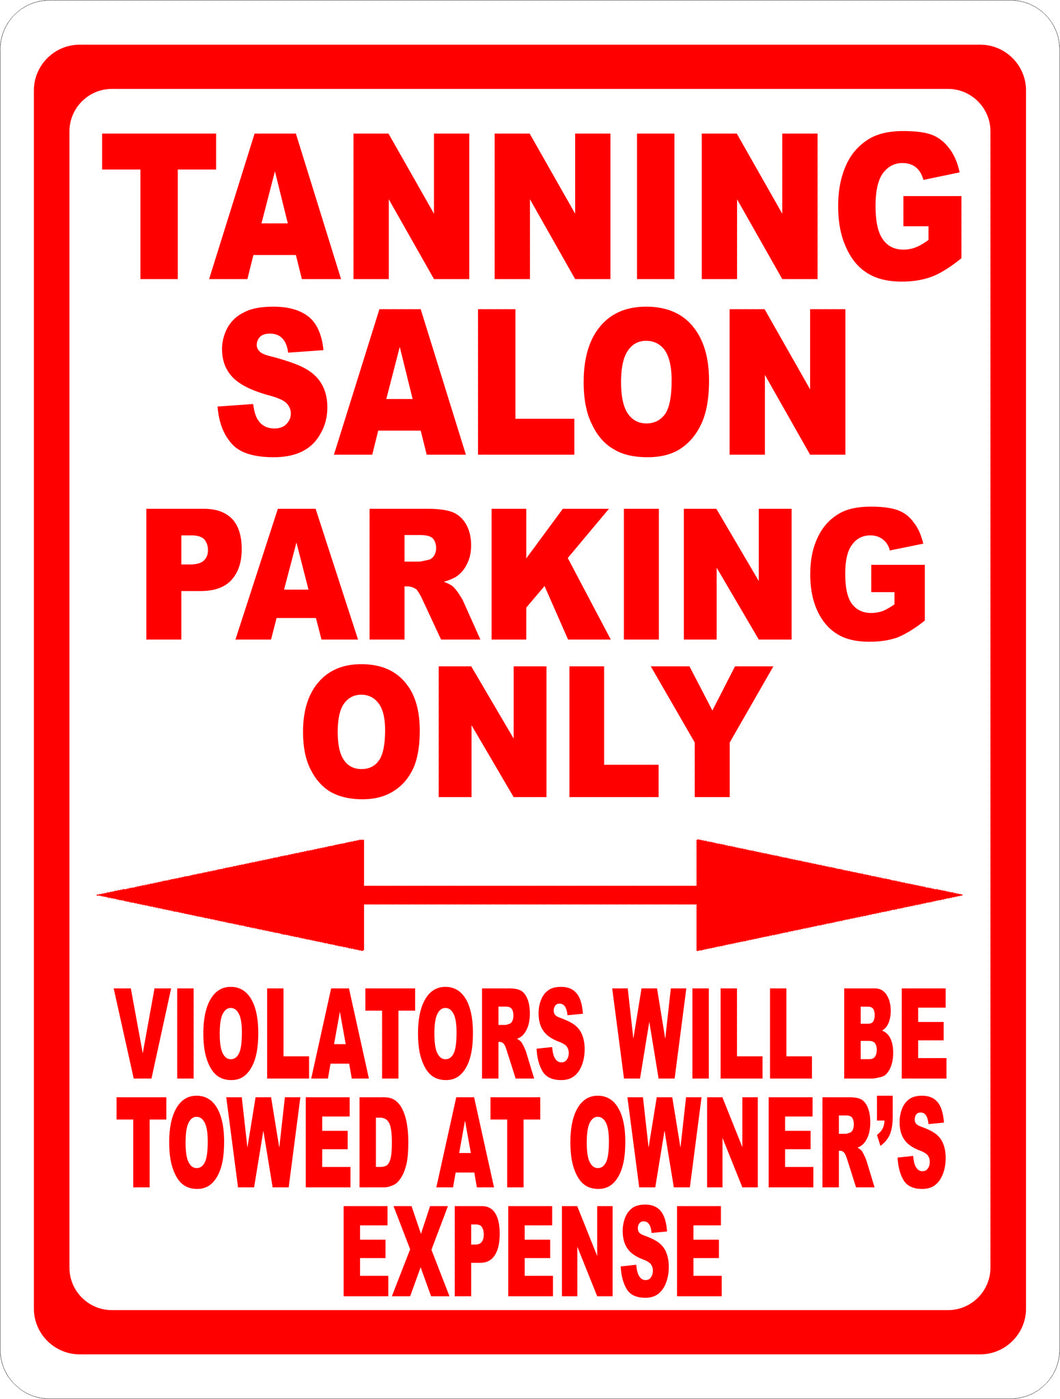 Tanning Salon Parking Sign